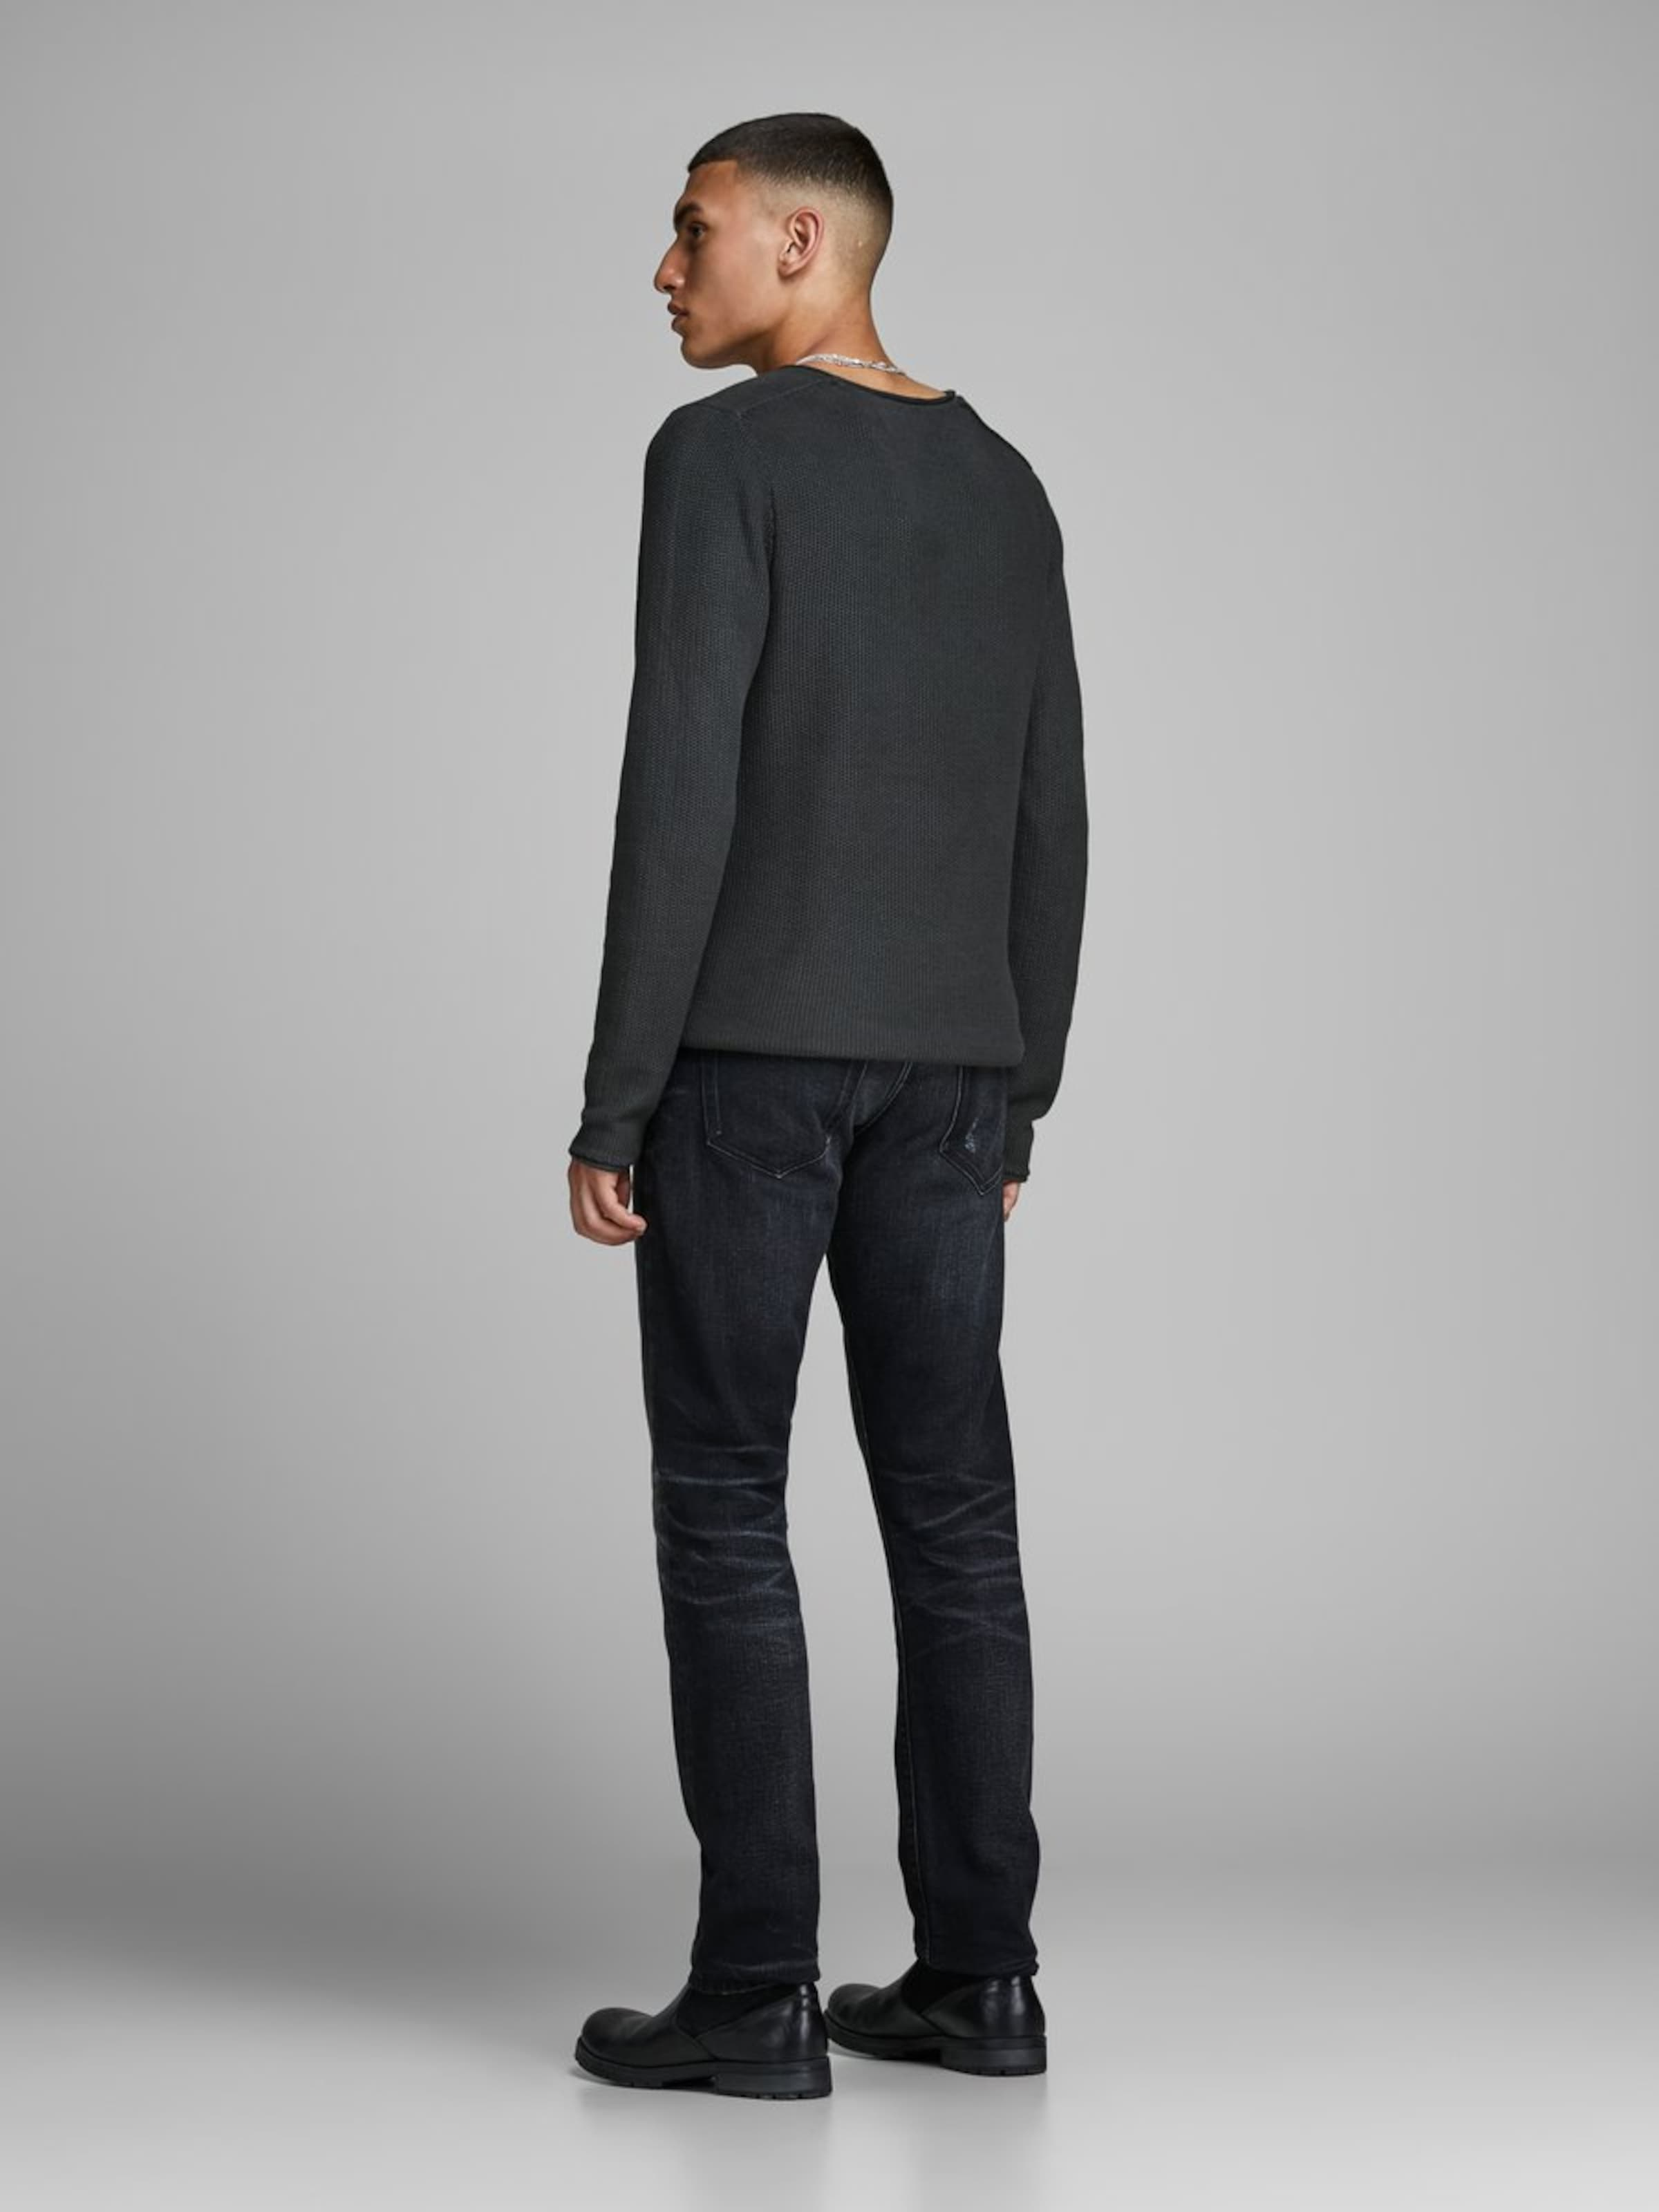 Crew Anthrazit Jackamp; Neck Knit Jones Strickpullover In Turn hCrxBsdtQ